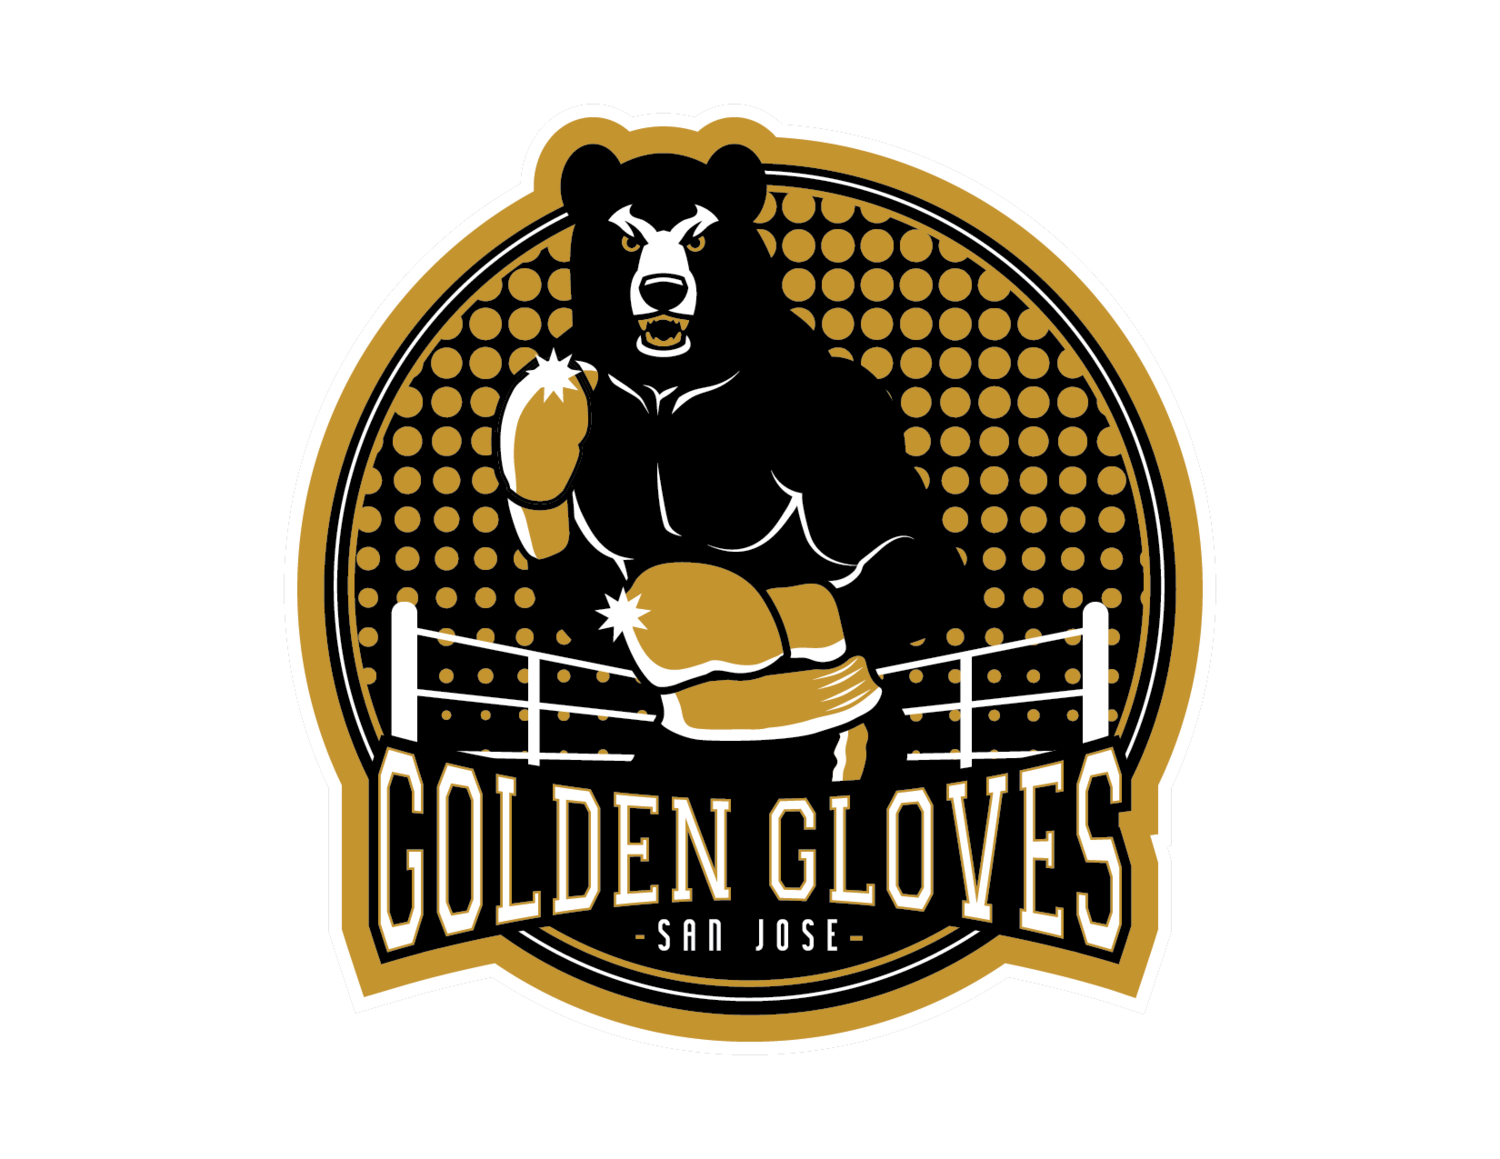 Golden Gloves Boxing San Jose